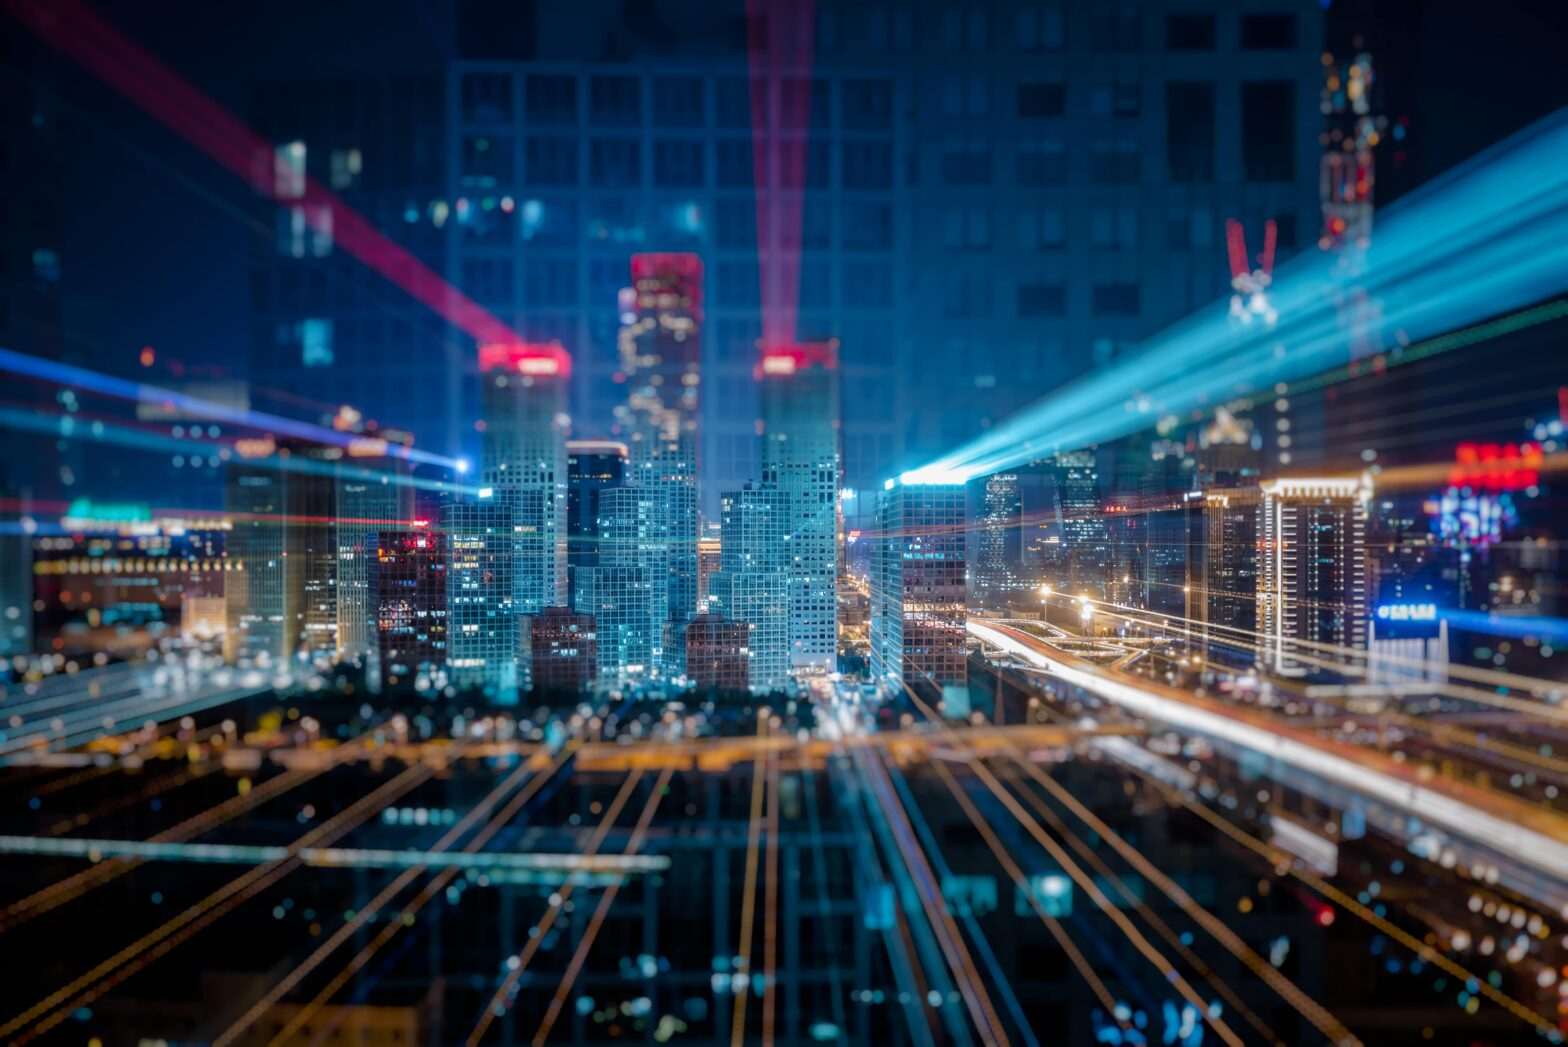 IoT – The backbone of smart city projects